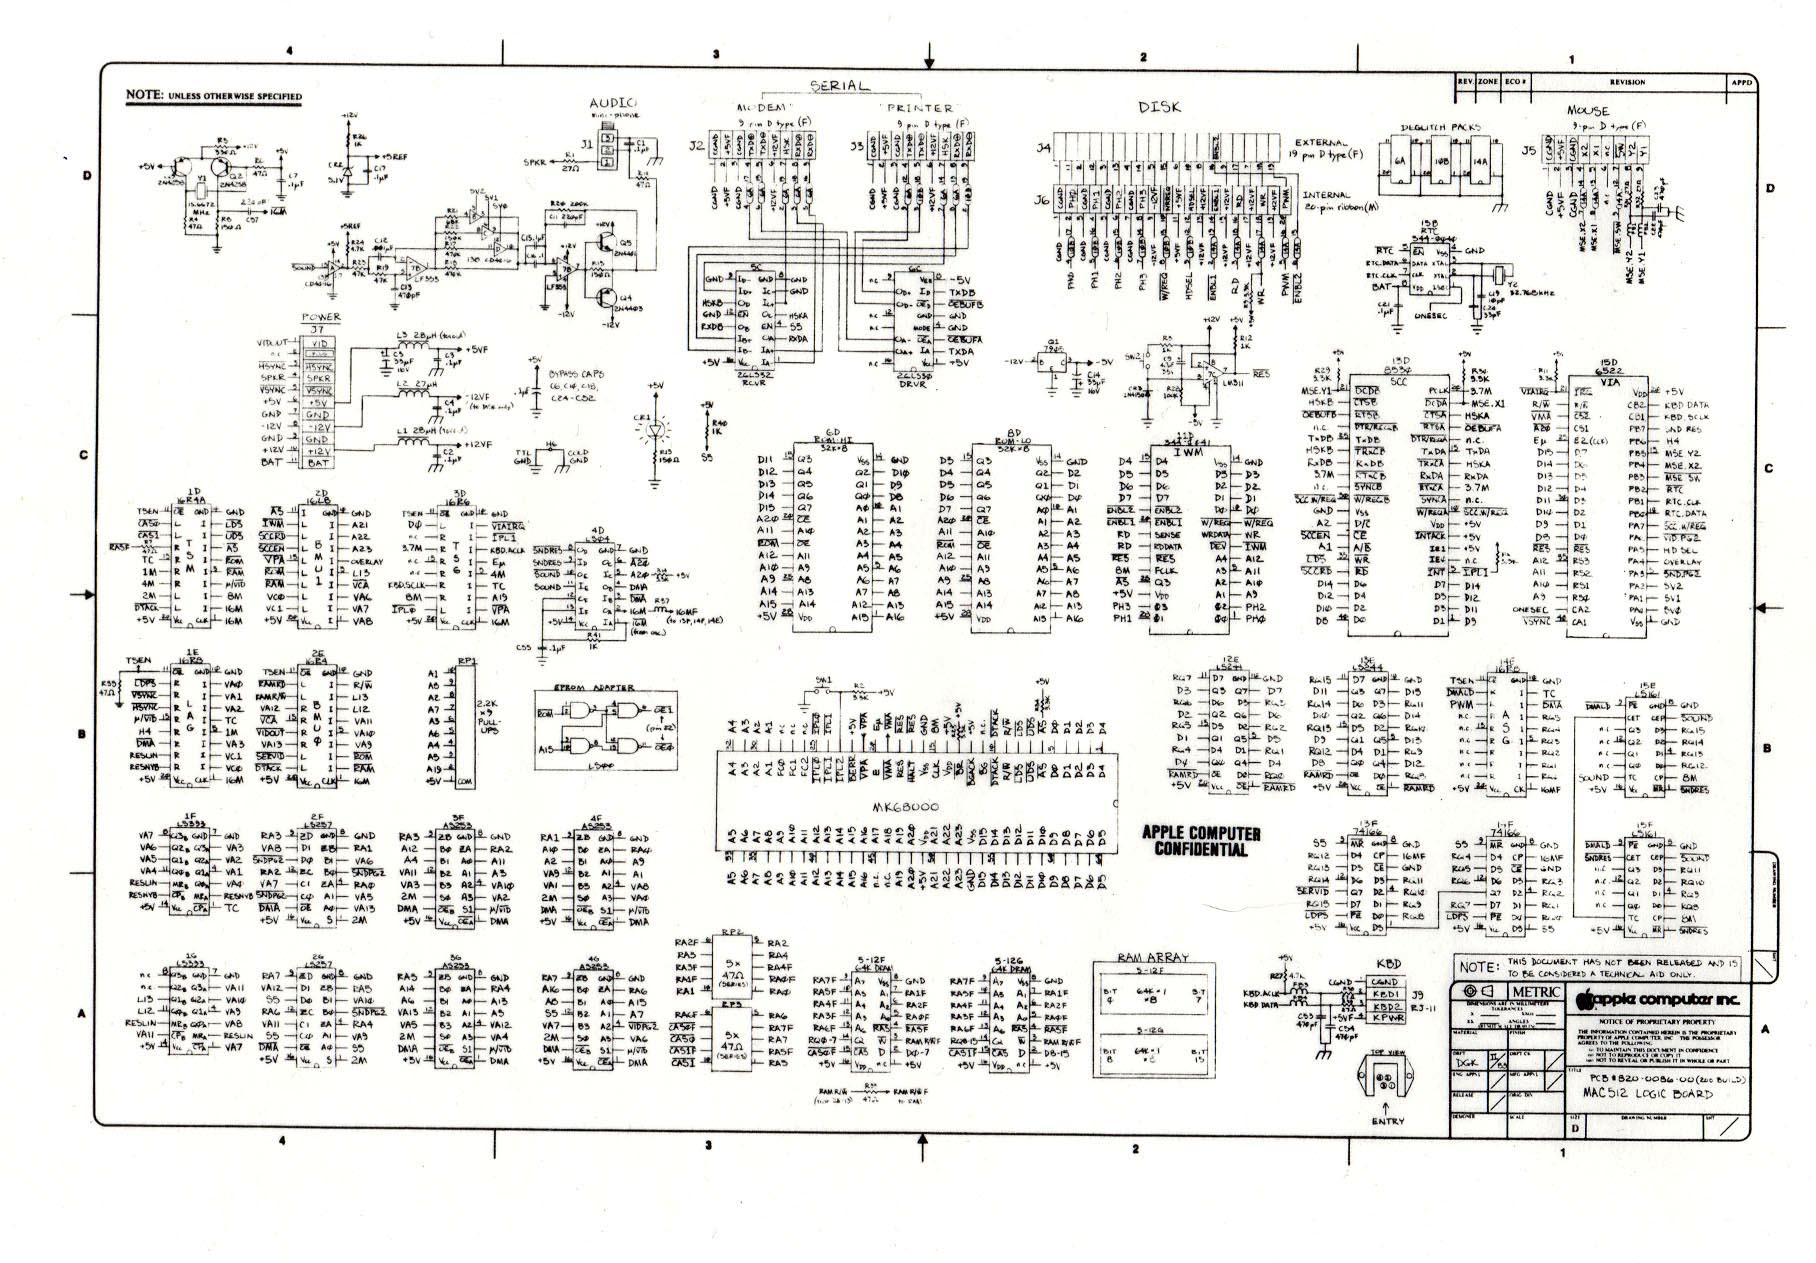 DigiBarn Diagrams: Original Macintosh 512K Logic Board